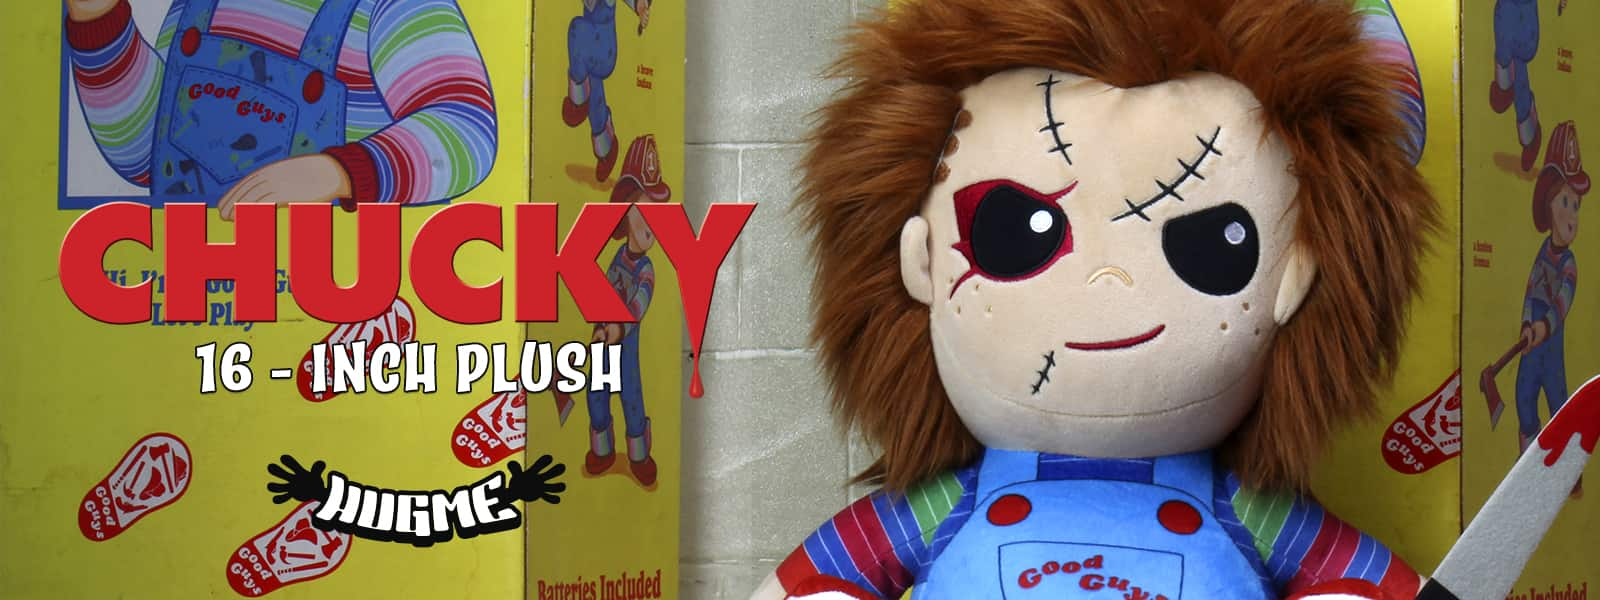 Child's Play Movie Chucky Doll by Kidrobot